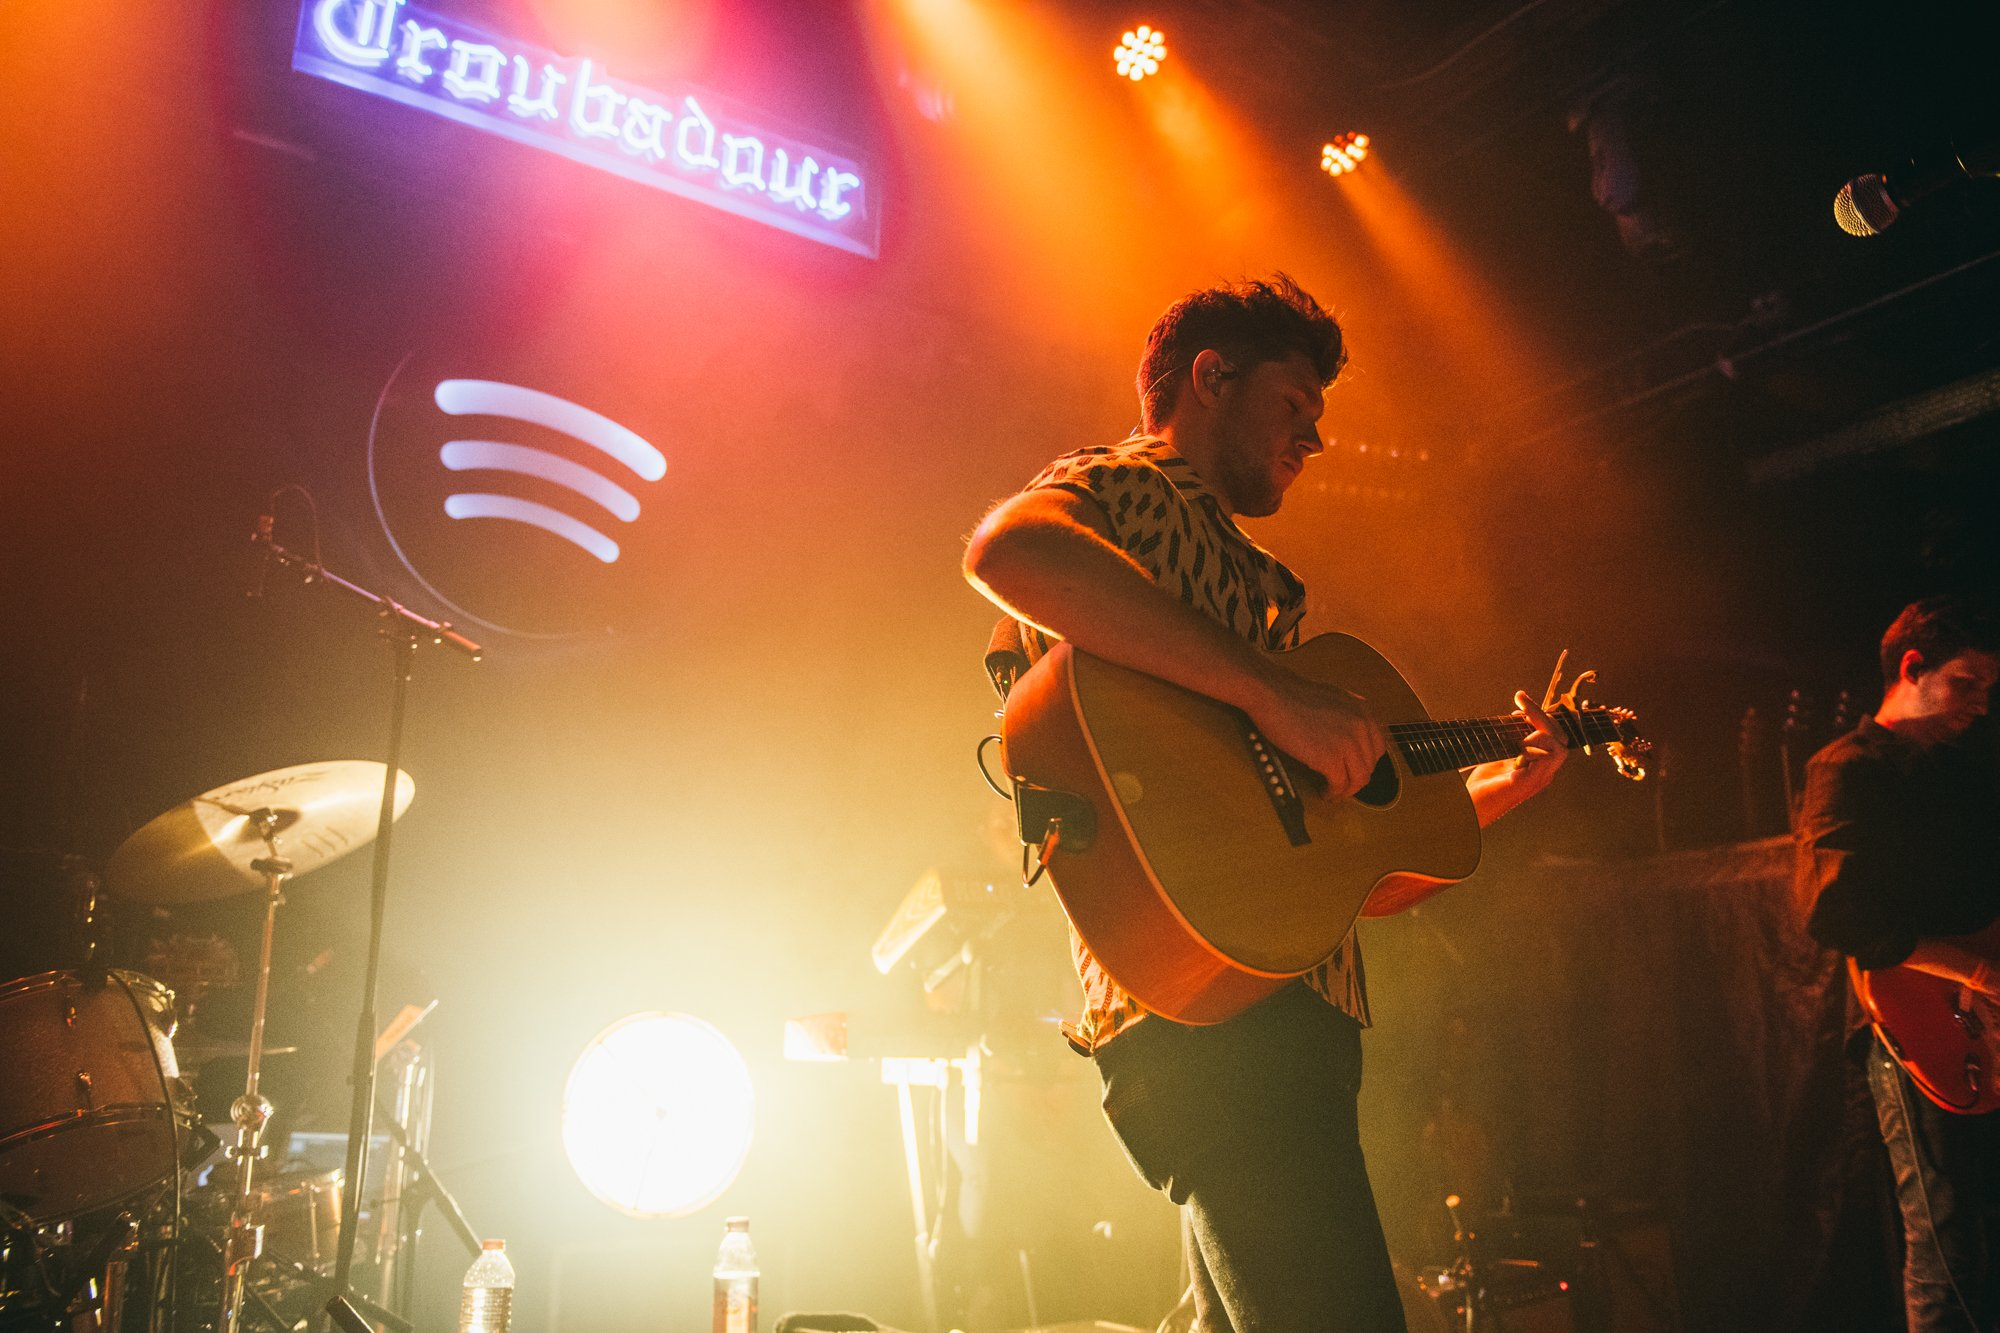 .@NiallOfficial gives his top fans a treat at the legendary @thetroubadour. #SpotifyFansFirst. ��  @conormcdphoto https://t.co/eS8zDCk3eH